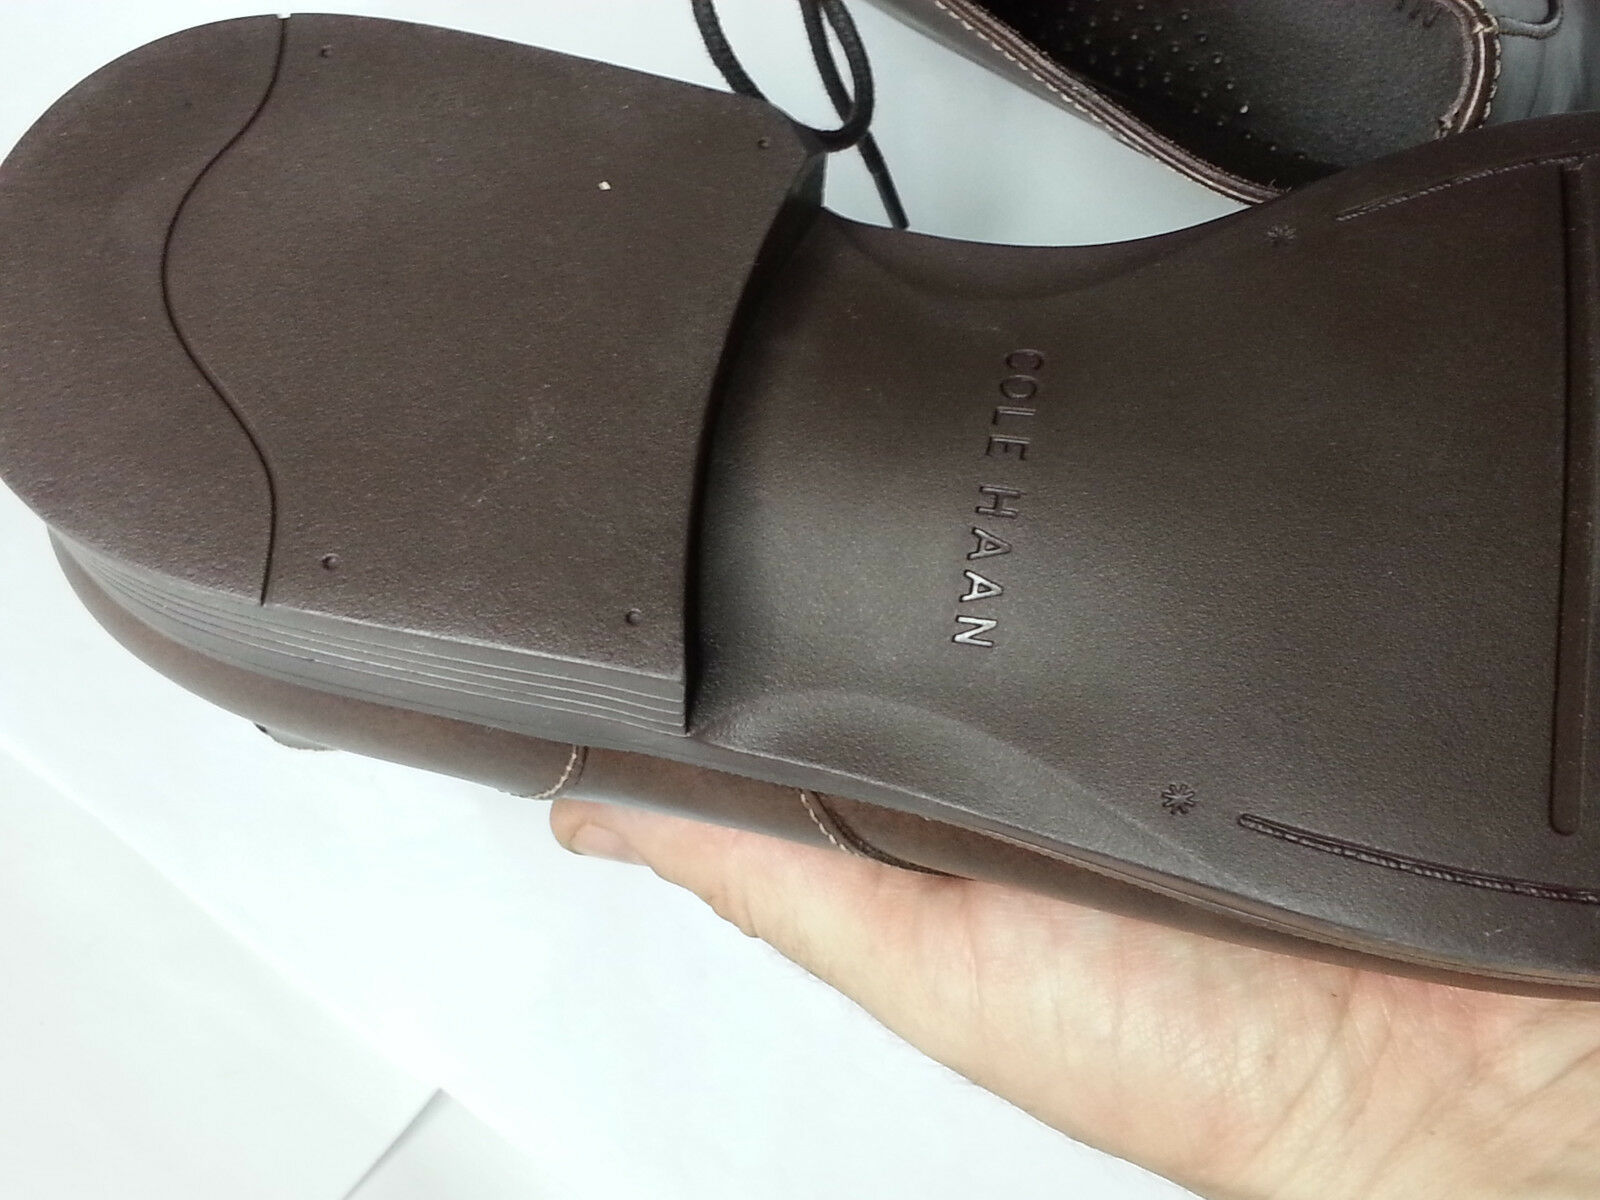 Cole Haan Men Size 10.5 Brown Leather Copley Chukka Boots Made in India New Box image 7